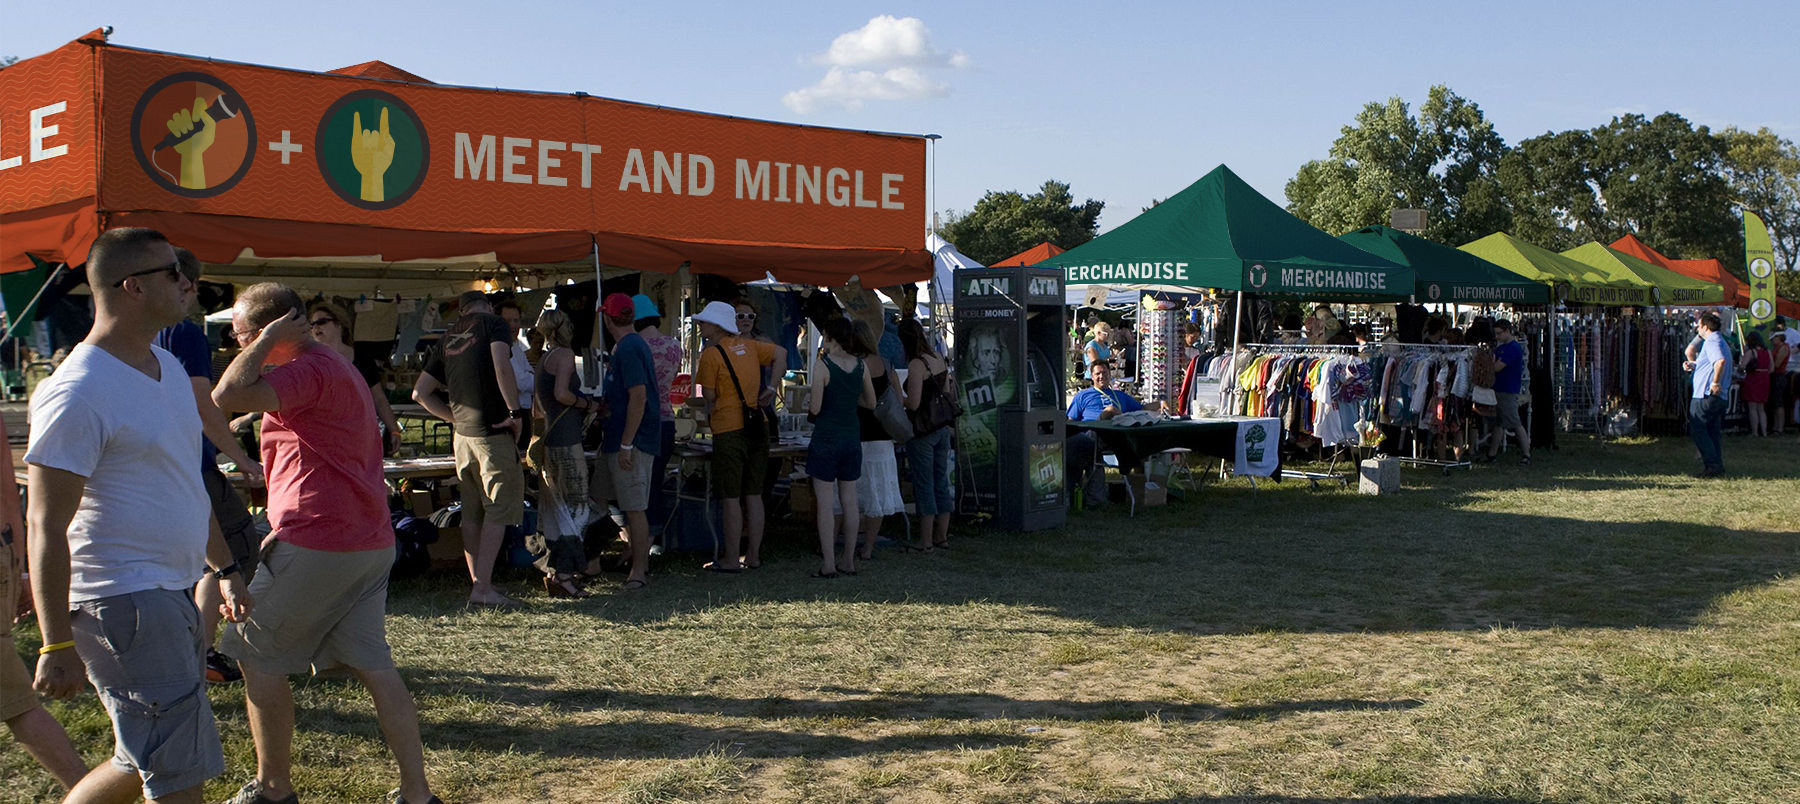 Festival tent and sign design